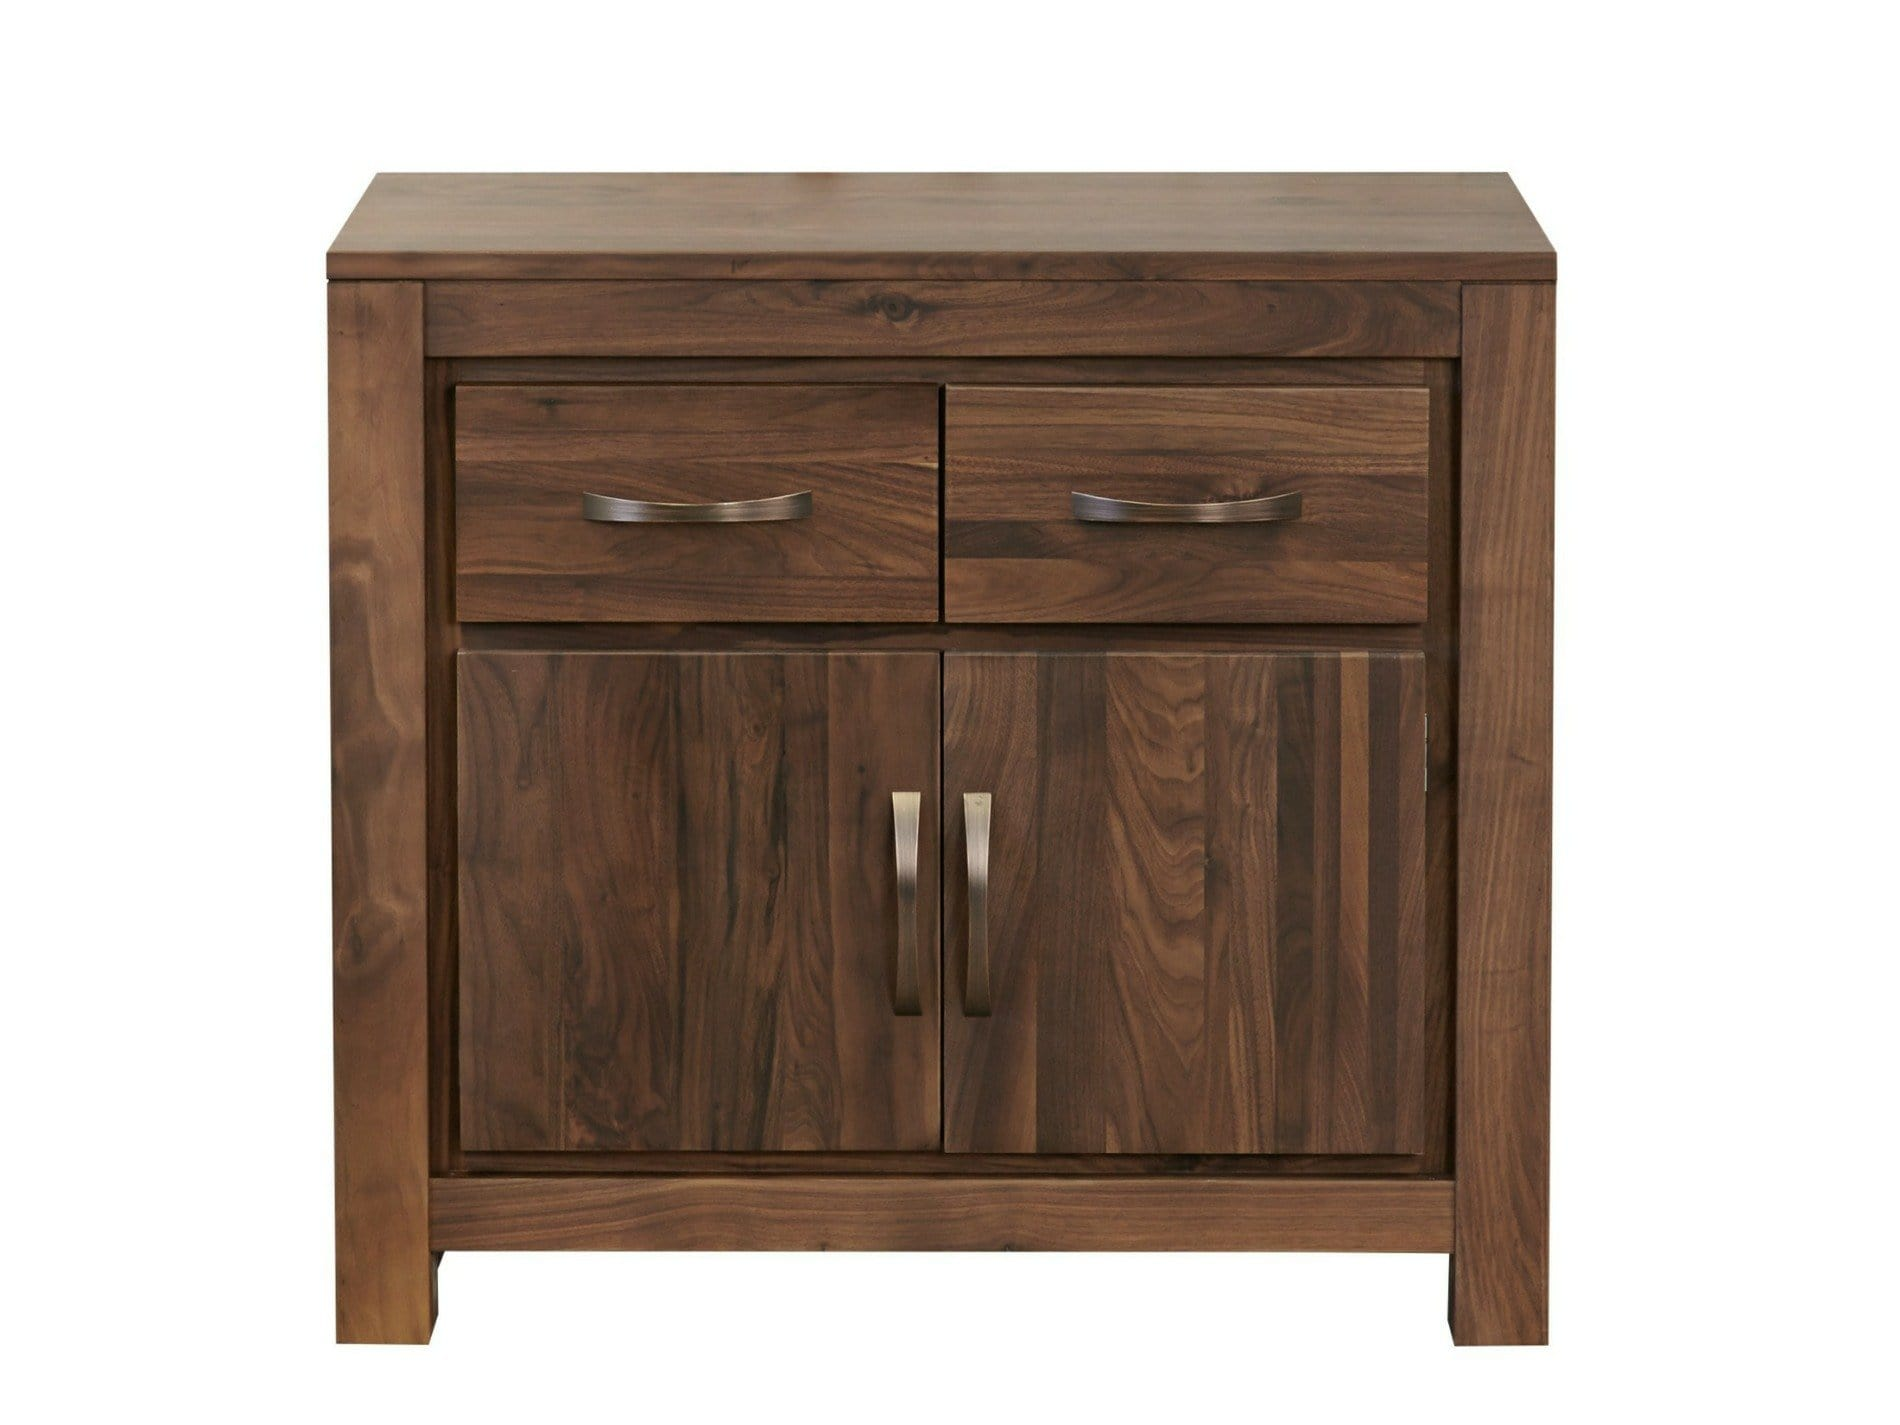 Orsina small walnut sideboard with a pair of drawers and one storage cupboard